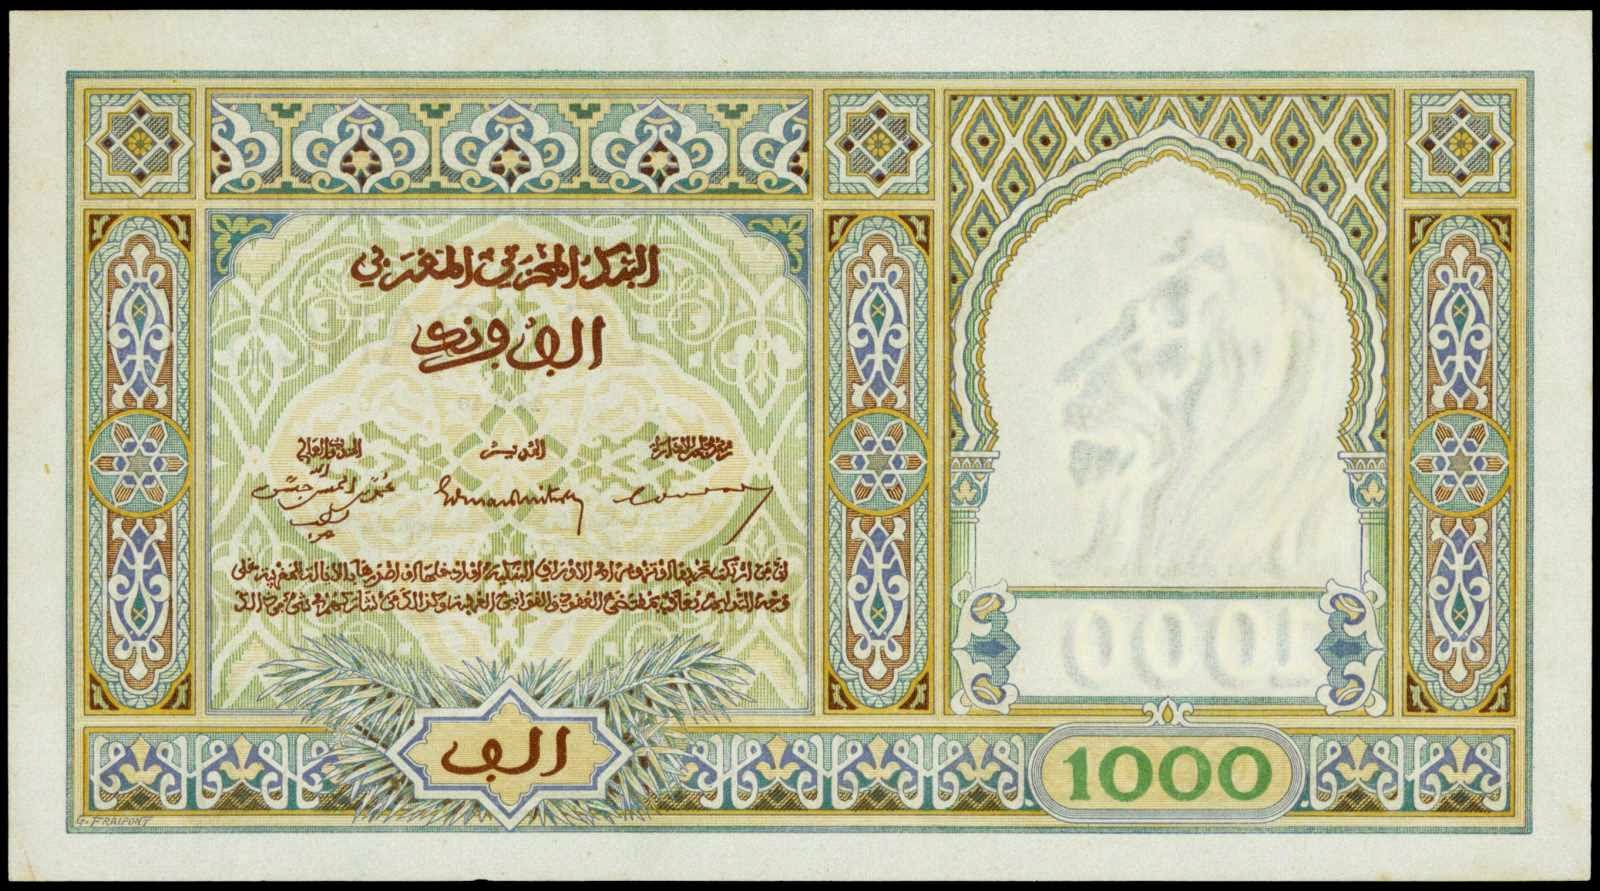 French Morocco 1000 Francs